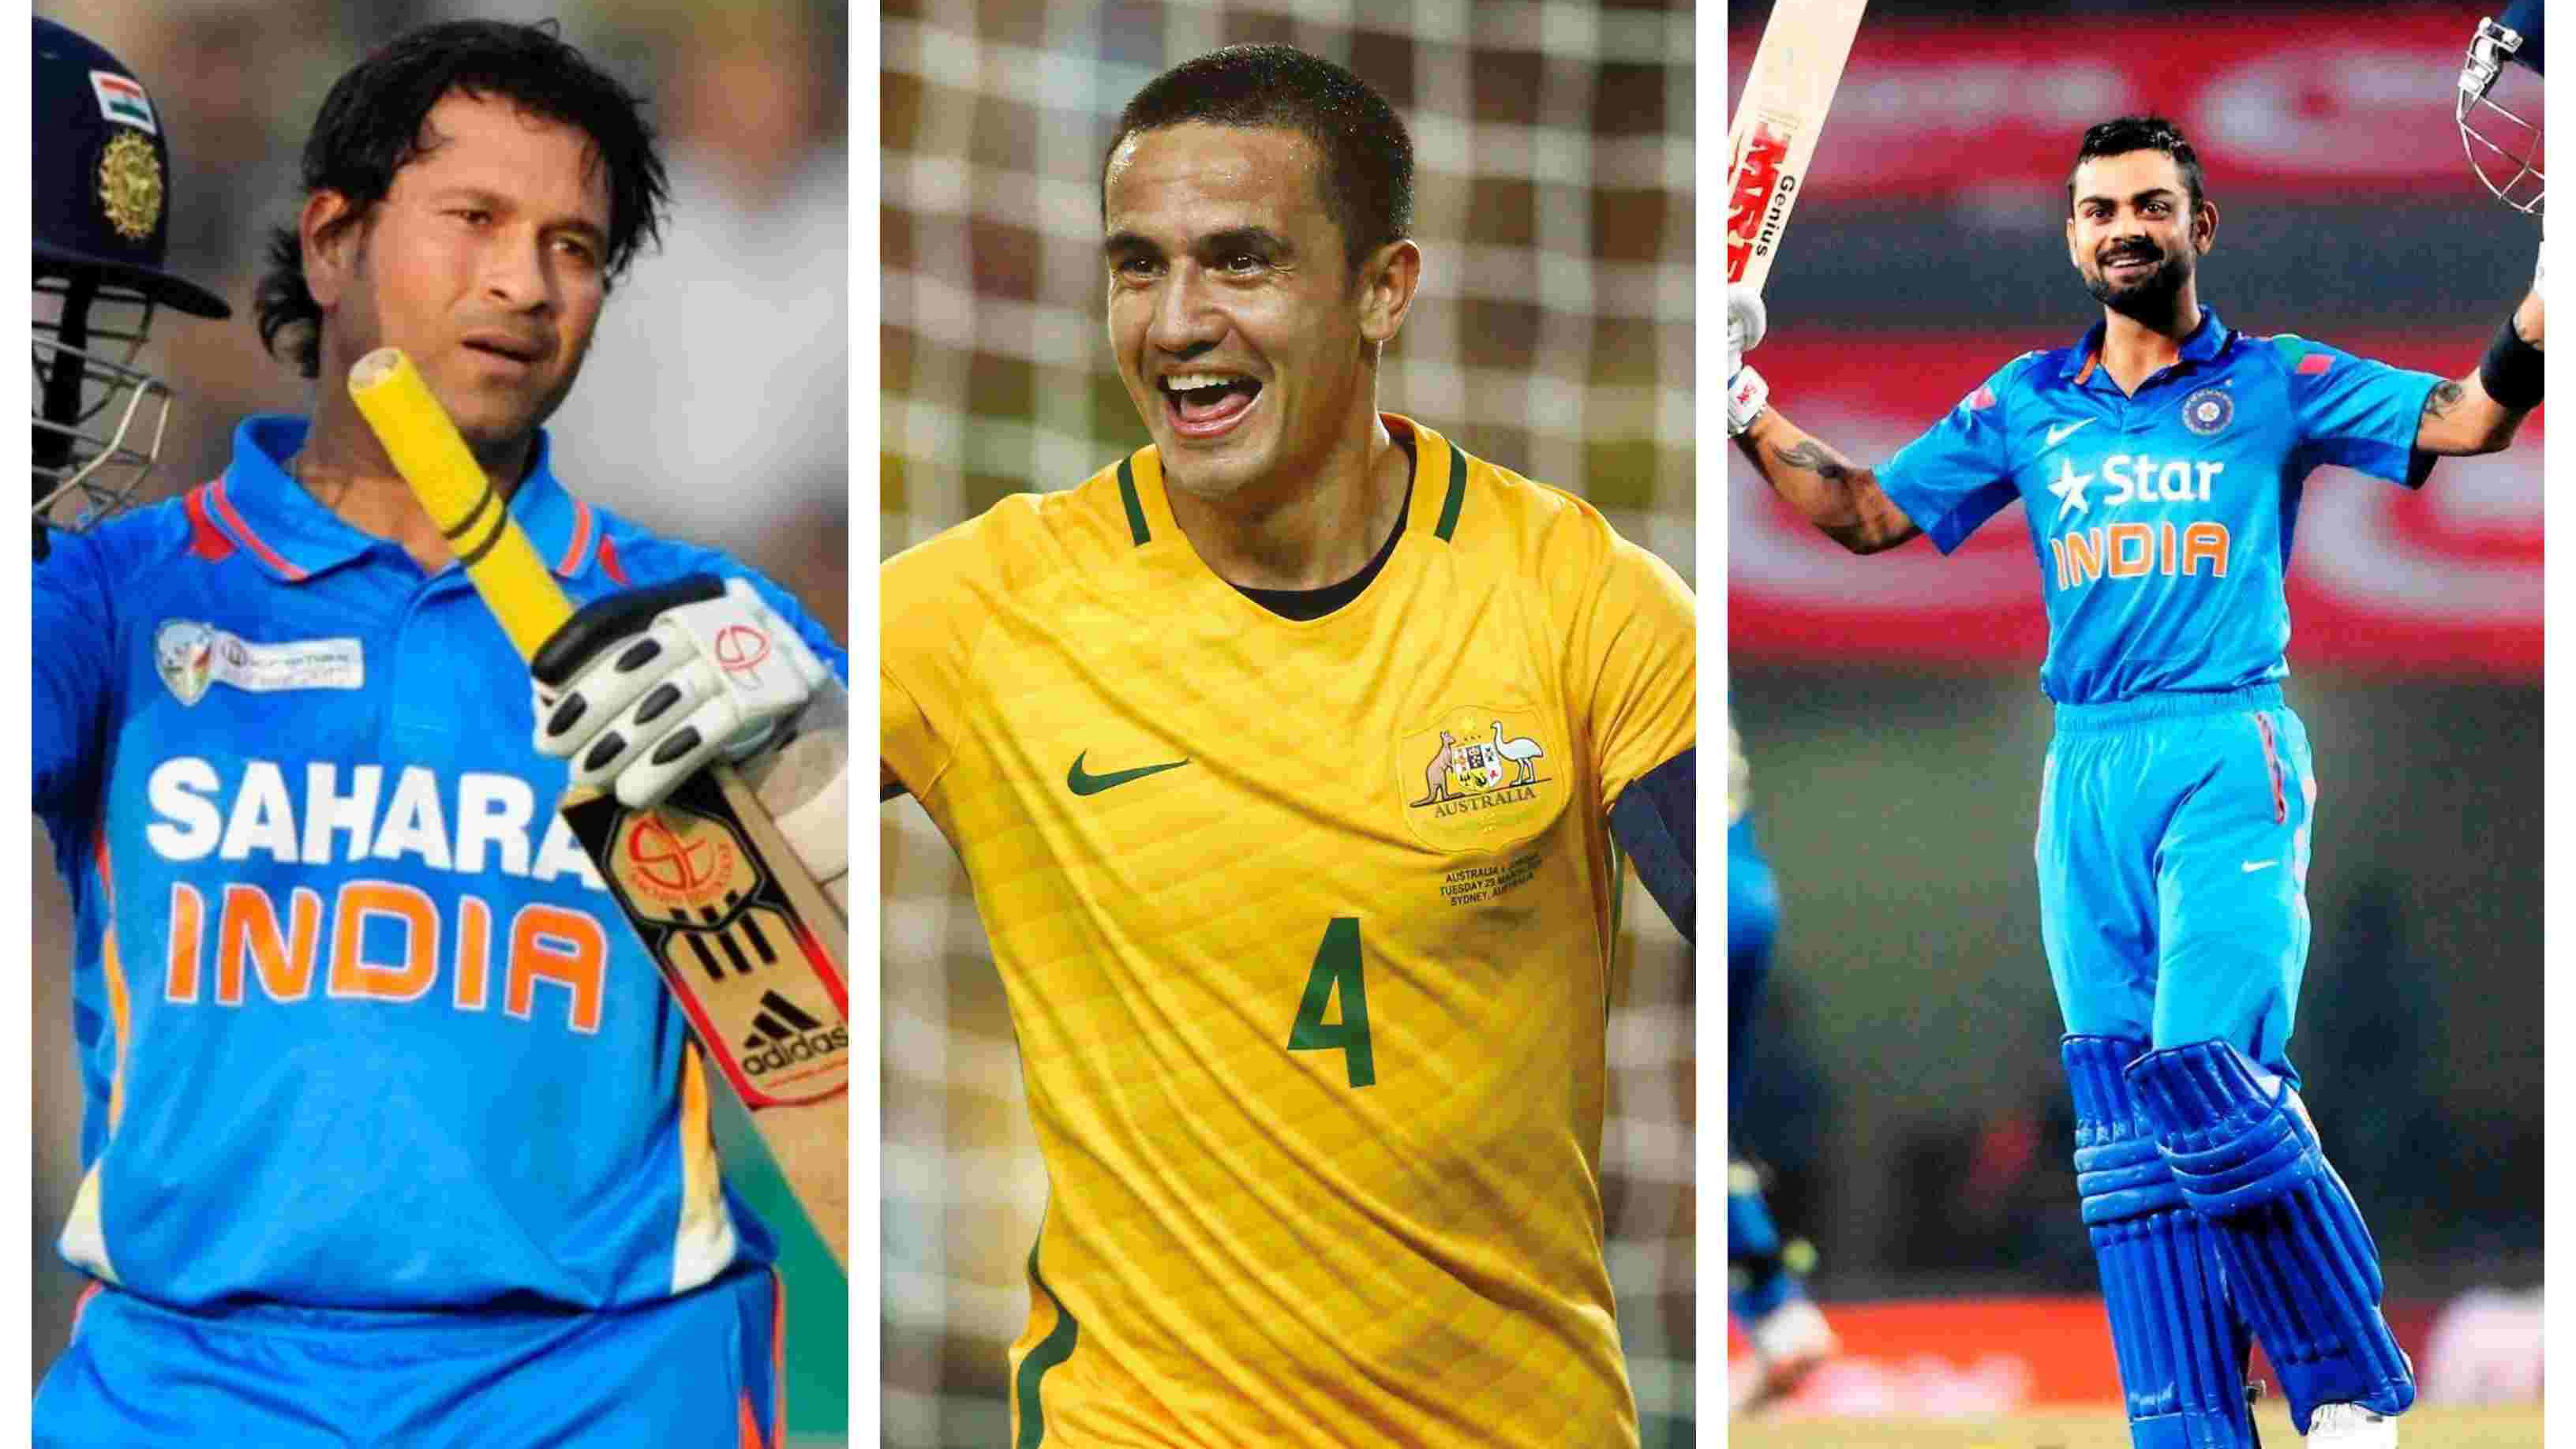 Australian football legend Tim Cahill reveals his favourite Indian cricketer